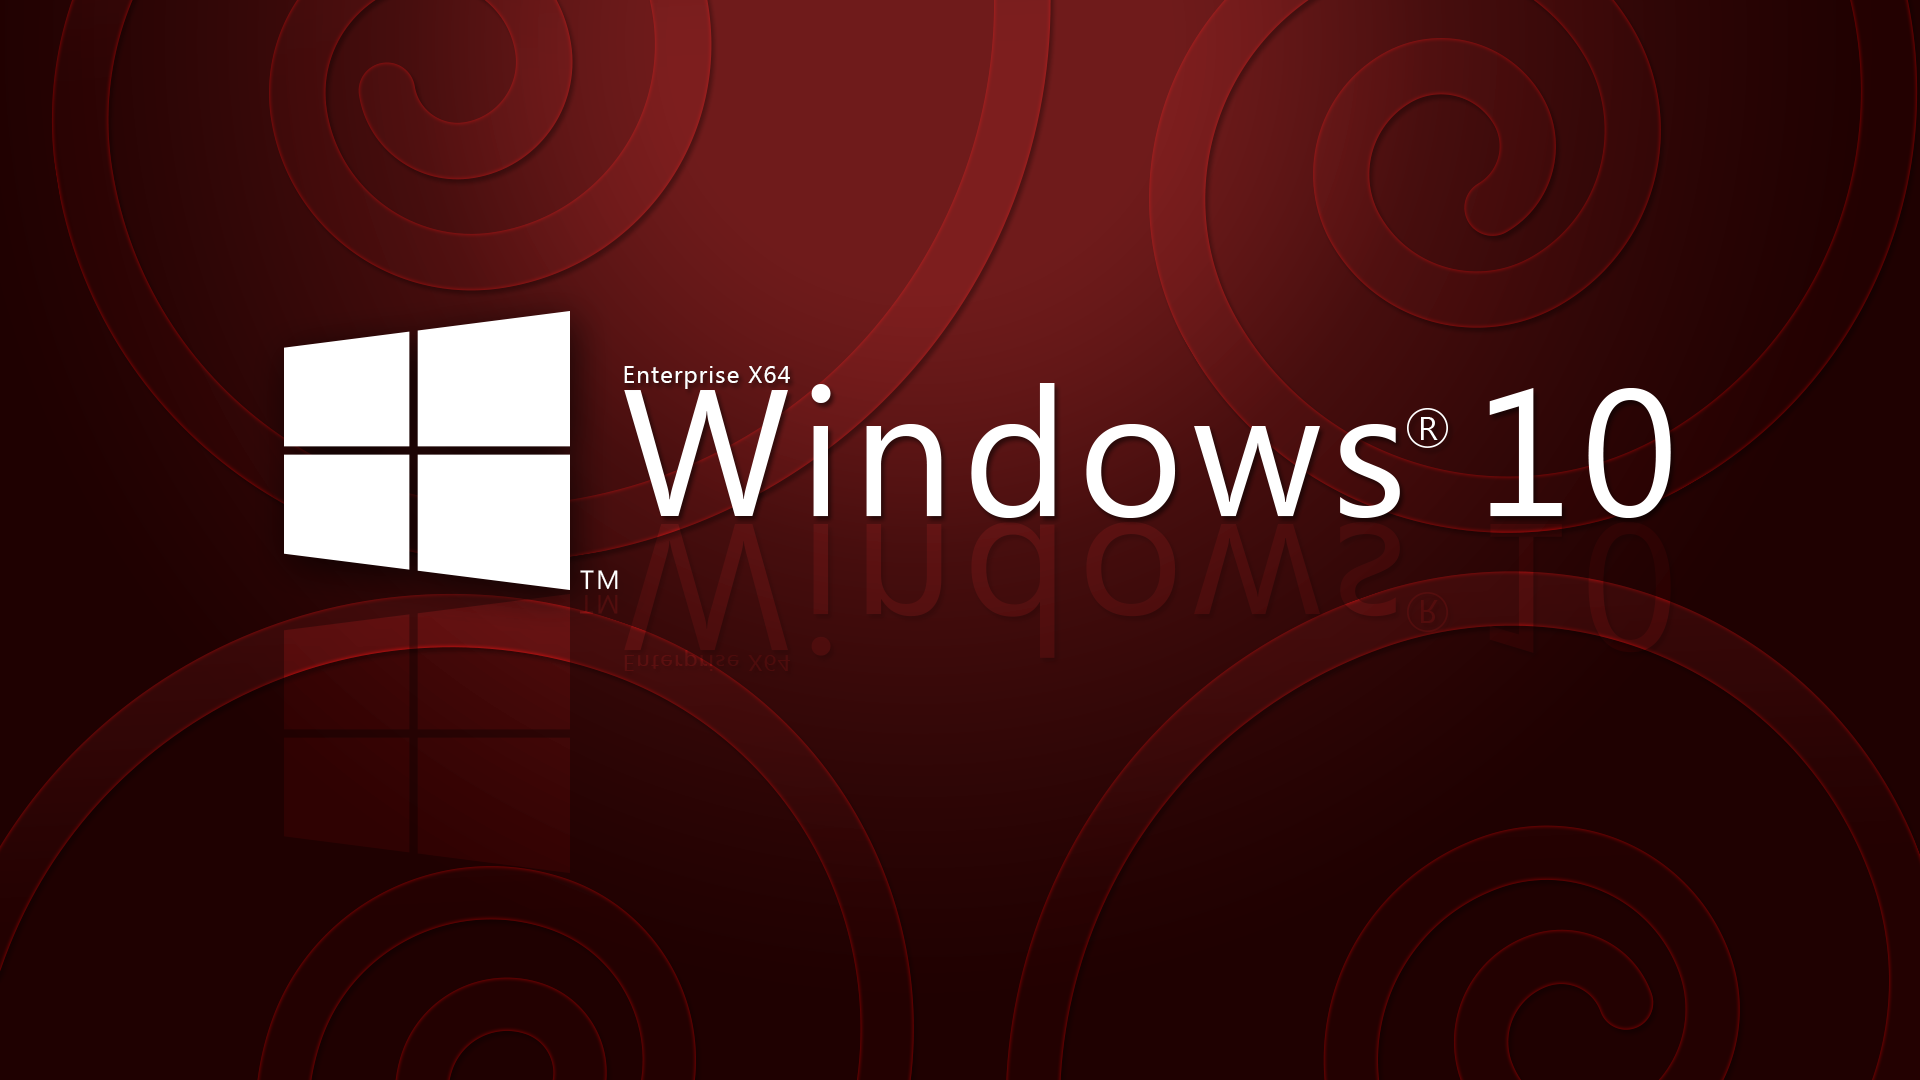 Windows 10 Backround 1080p By Kgou On Deviantart